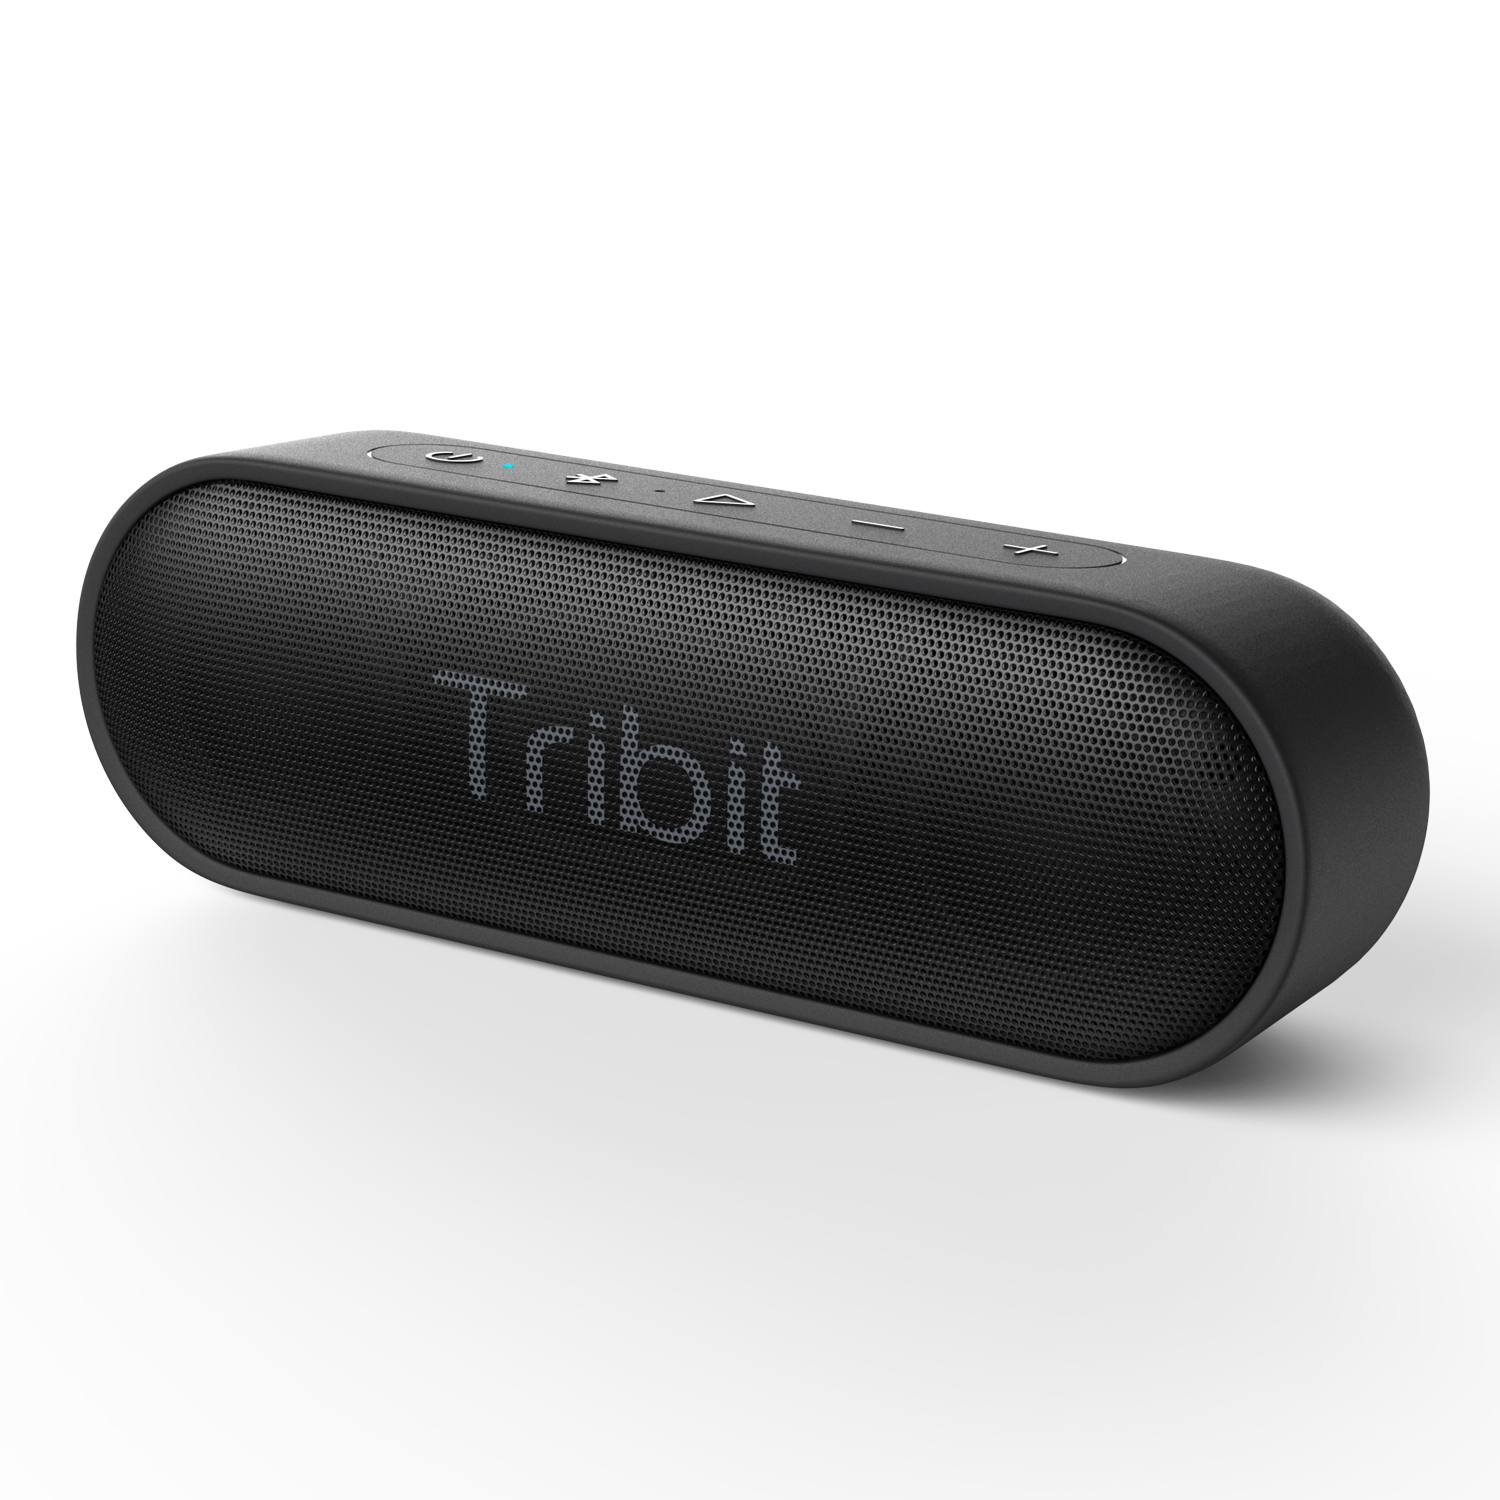 Tribit Xsound Pergi Stereo Speaker Tebal Bass 24 Jam Pemutaran Built-In MIC IPX7 Speaker Bluetooth Tahan Air